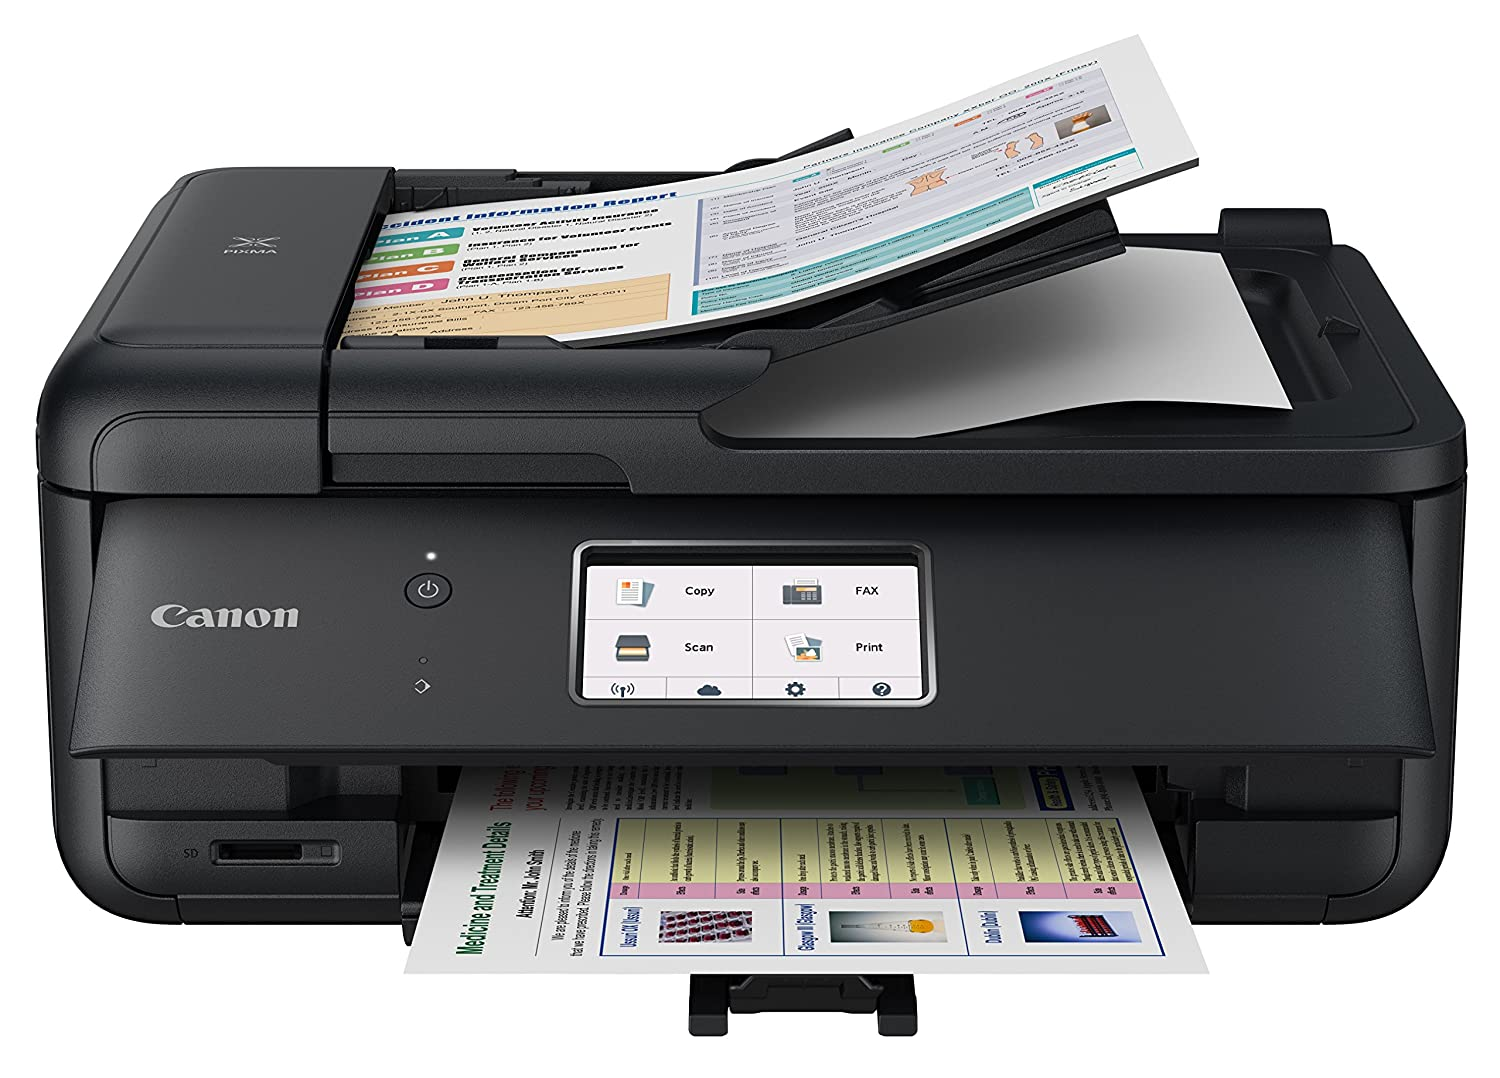 Top 9 best printers for Mac, iPad & iPhone (2020 Reviews & Buying Guide) 3